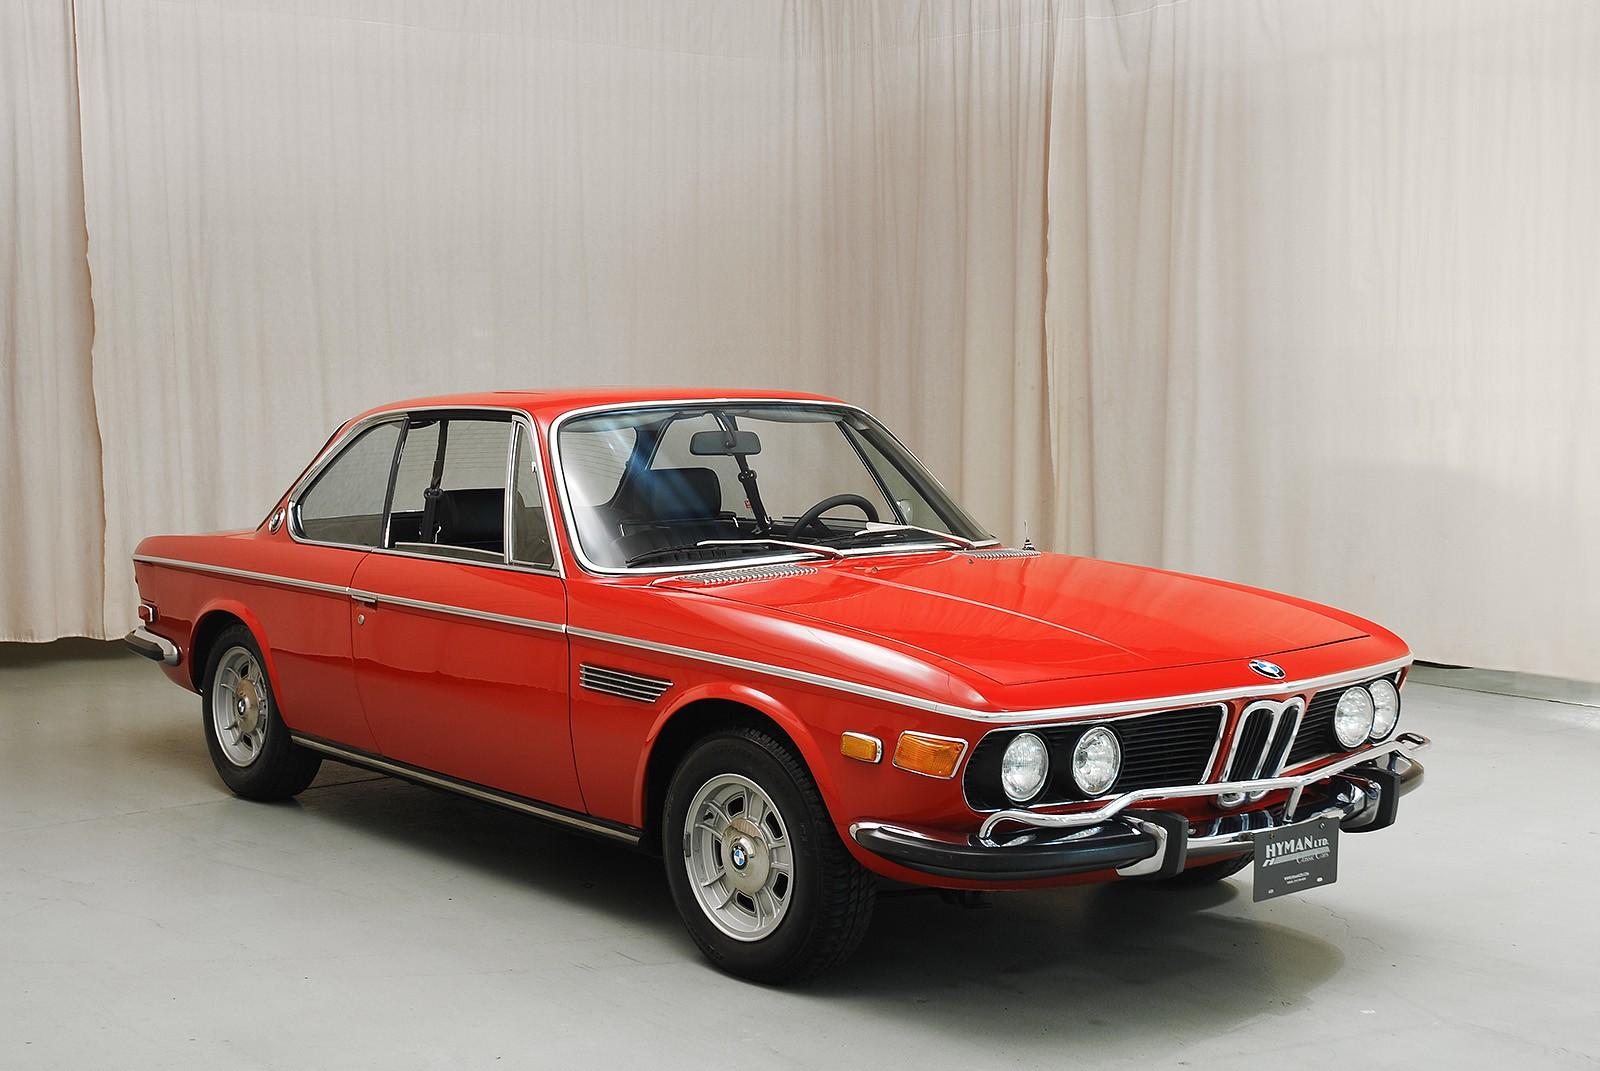 1972 Collector'-s BMW 3.0CS Coupe for Sale in St. Louis - autoevolution